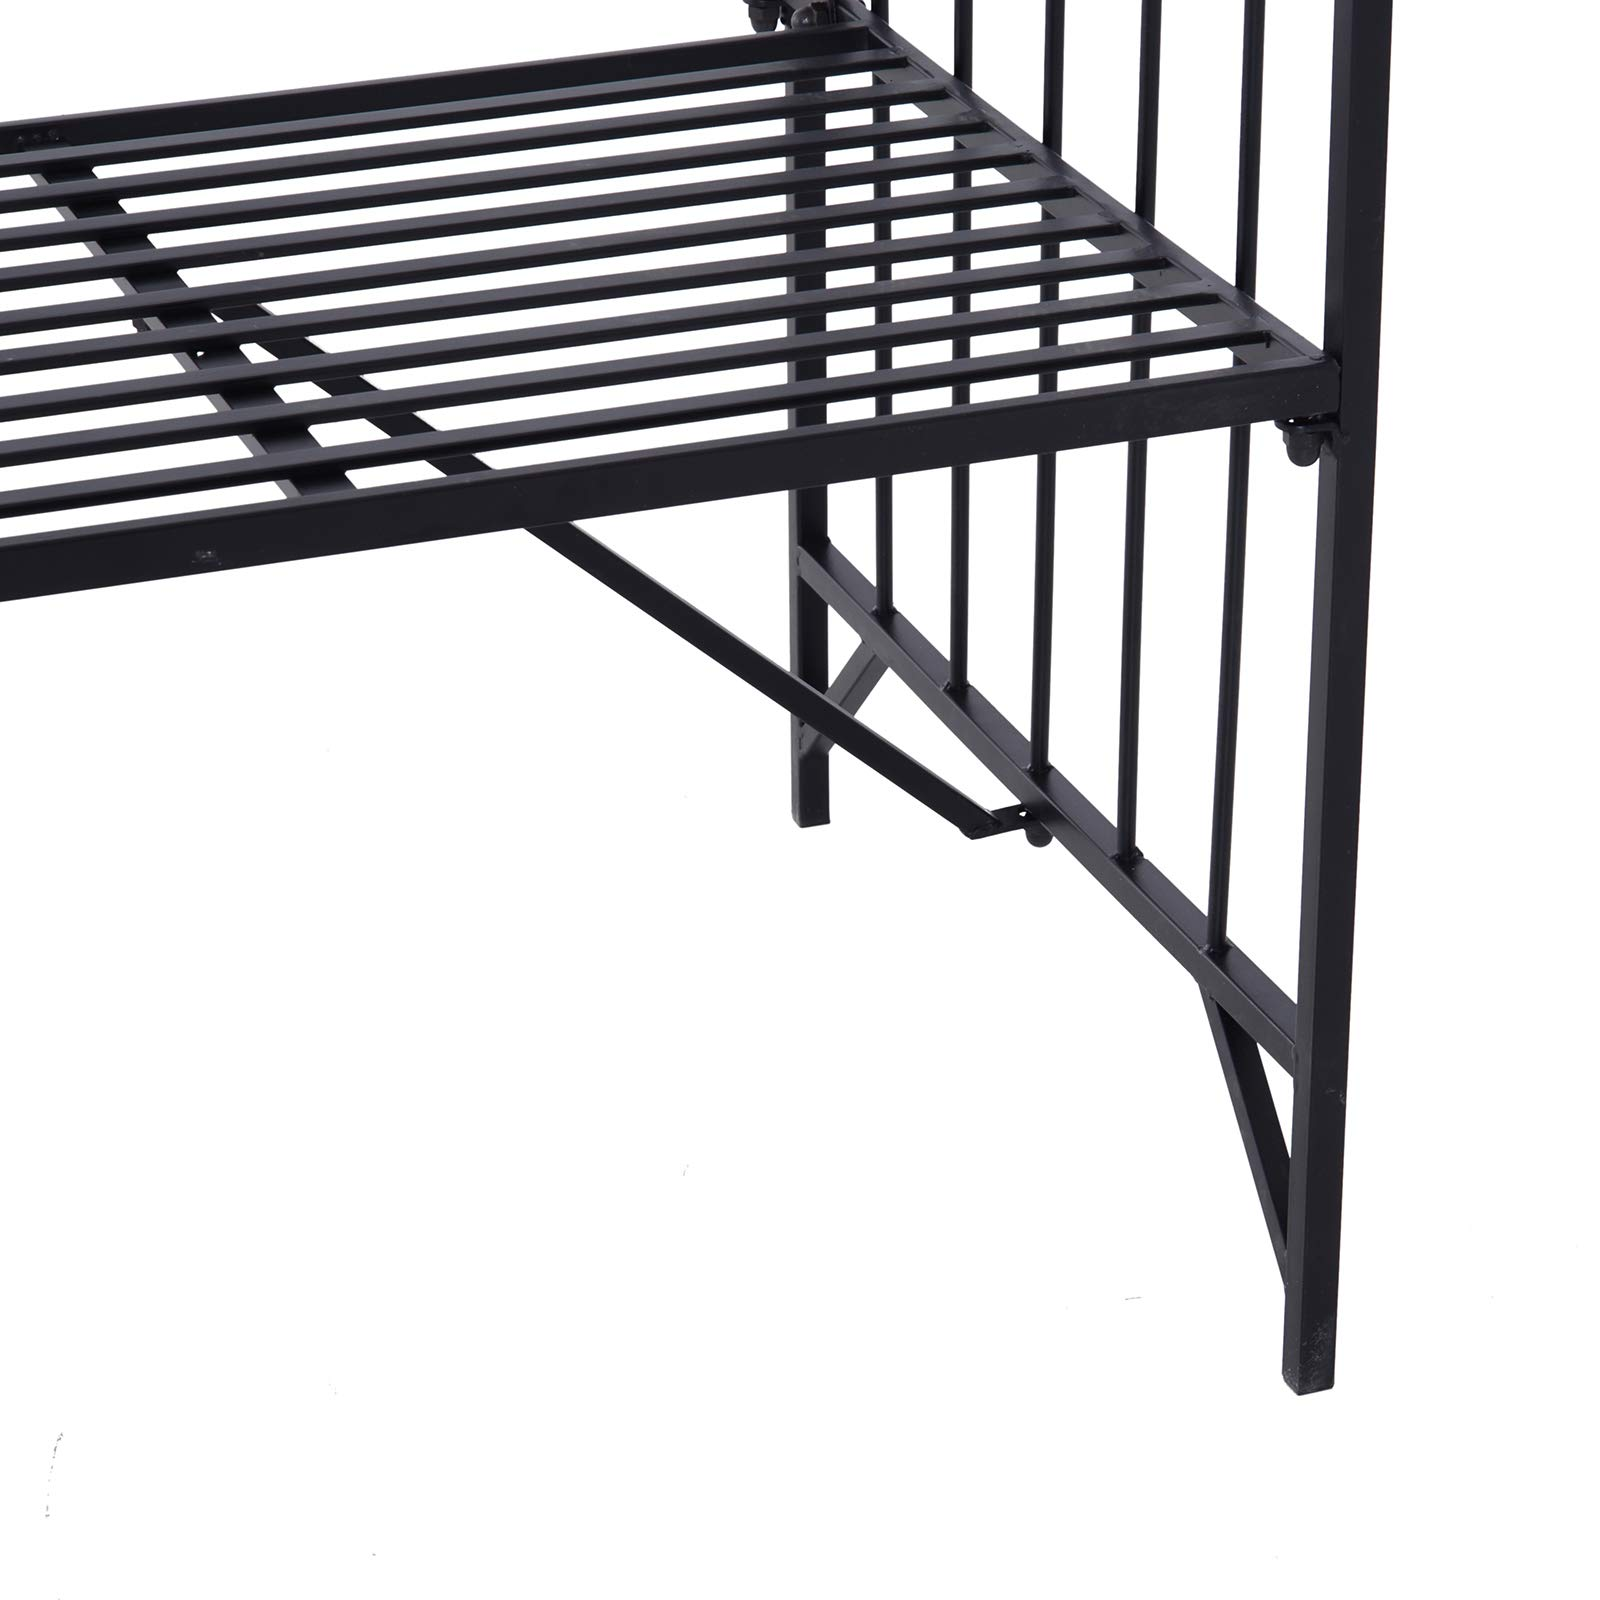 Outsunny Outdoor Garden Arbor Arch Steel Metal with Bench Seat - Black by Outsunny (Image #8)